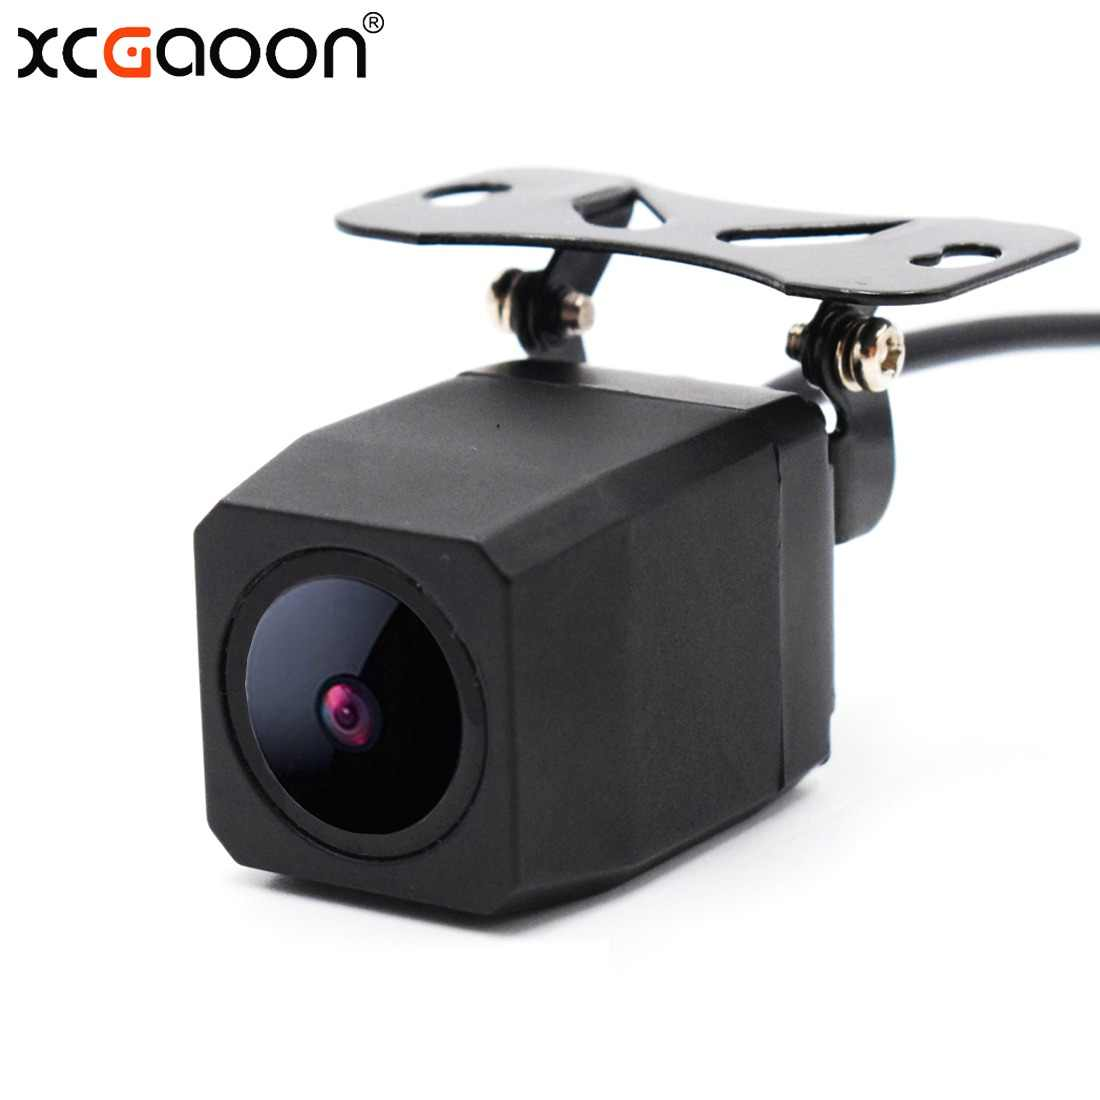 XCGaoon Metal CCD HD Car Rear View Camera Night Version Waterproof Wide Angle Backup Camera Parking Reversing Assistance